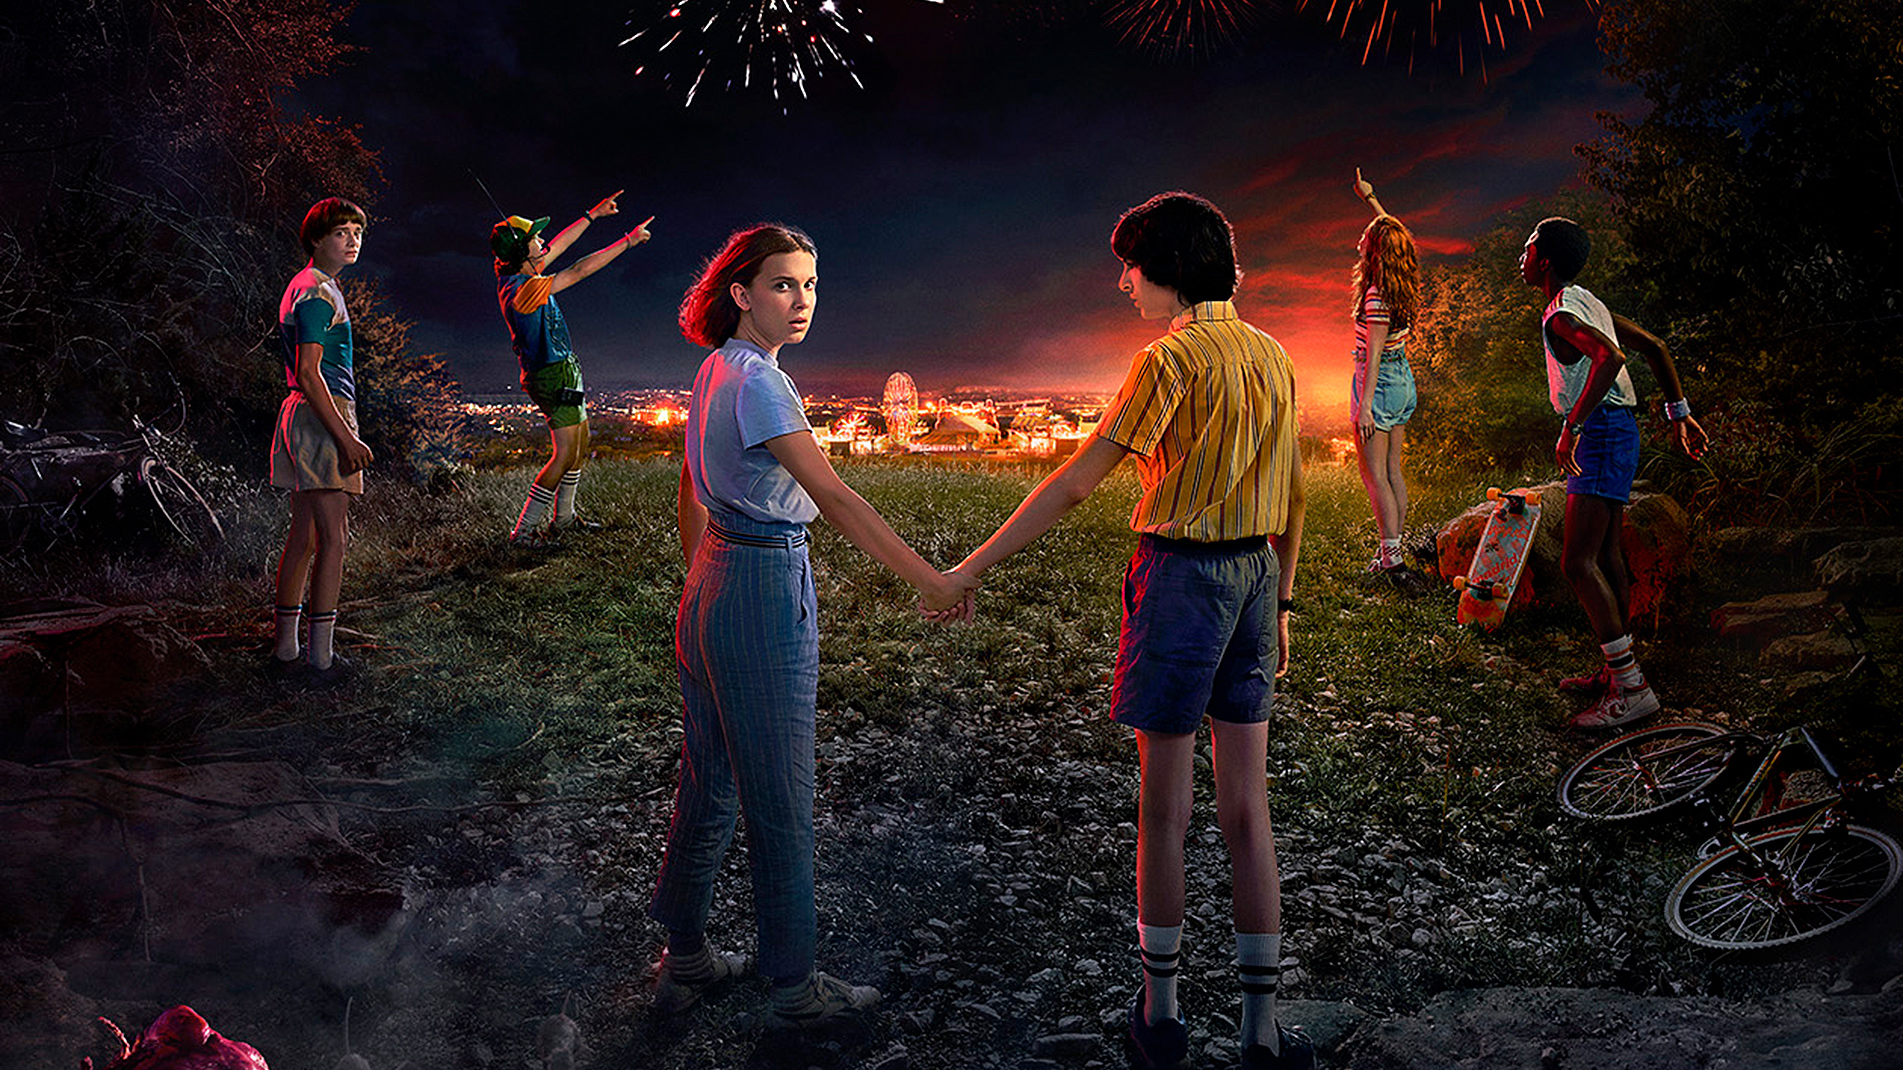 Stranger Things Season 3 2019 Hd Tv Shows 4k Wallpapers